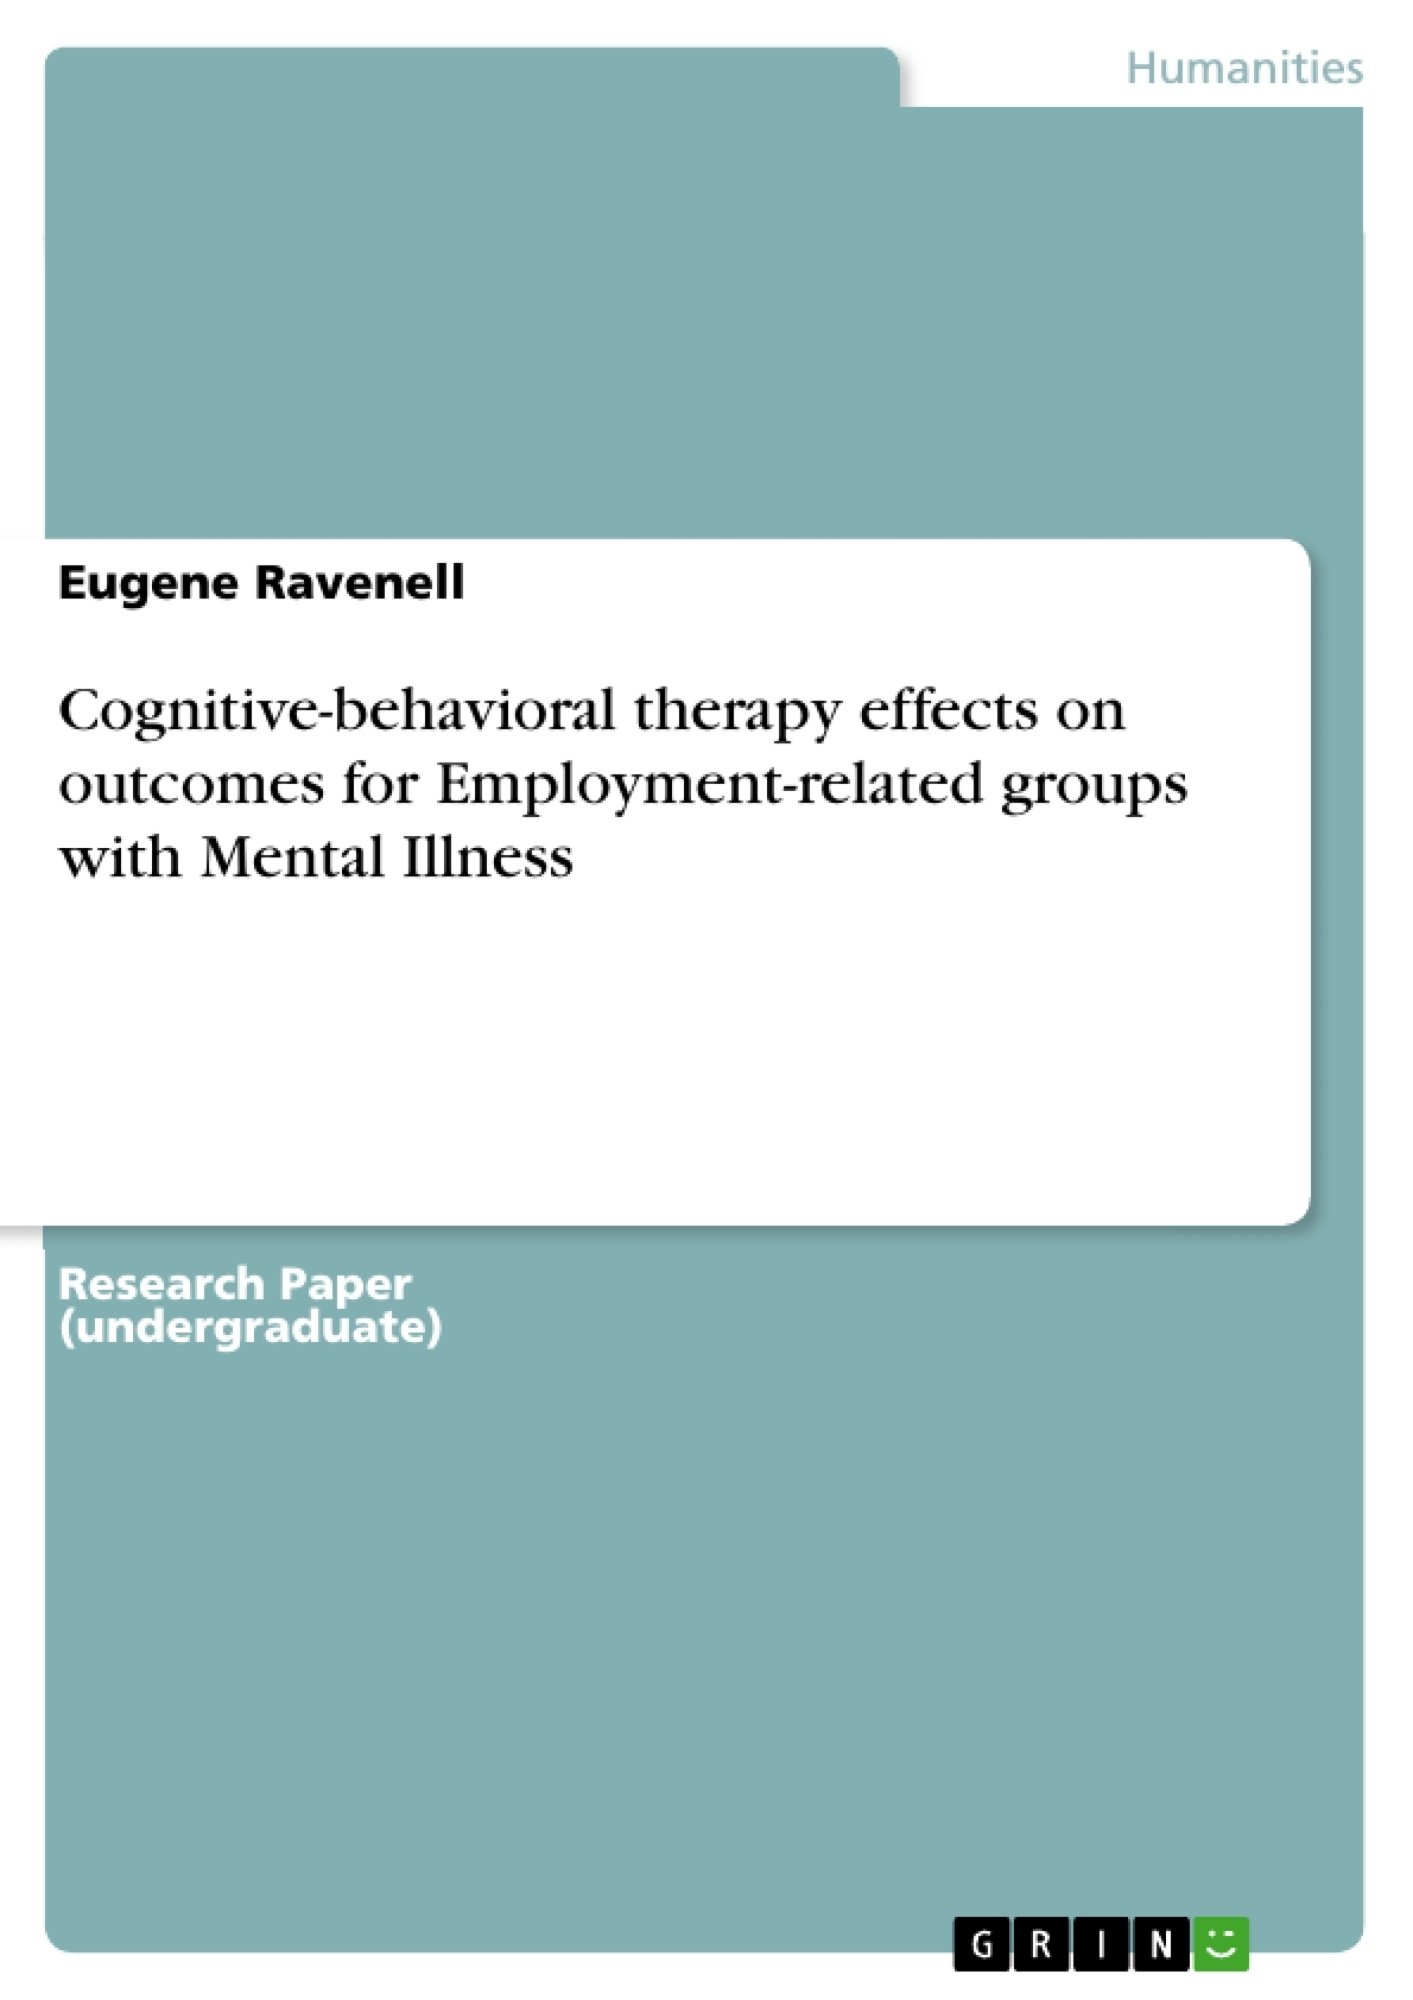 Title: Cognitive-behavioral therapy effects on outcomes for Employment-related groups with Mental Illness